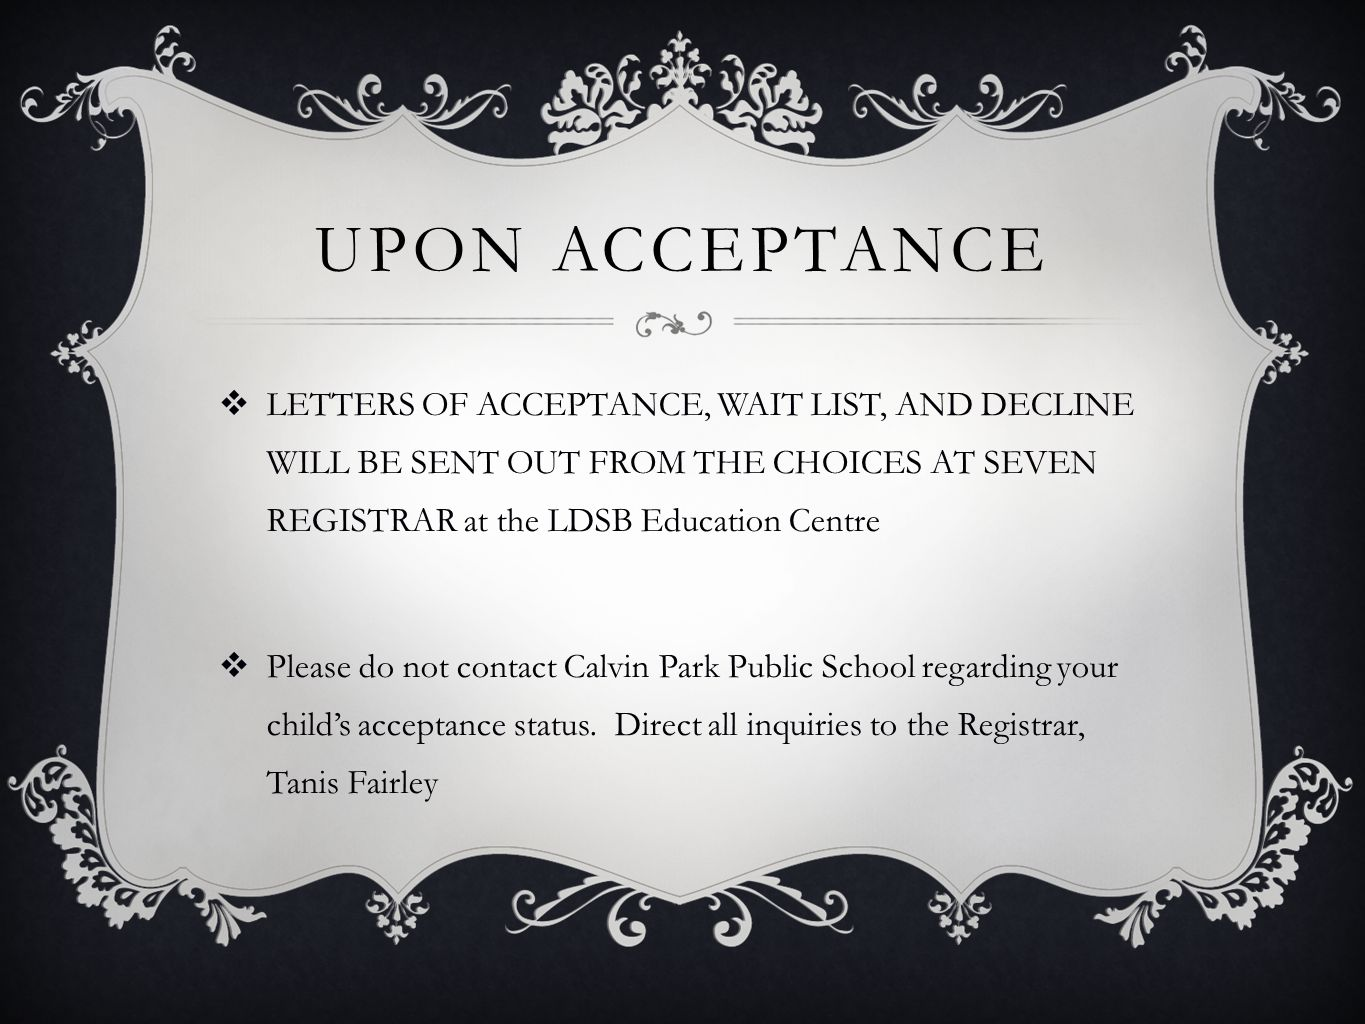 Upon acceptance LETTERS OF ACCEPTANCE, WAIT LIST, AND DECLINE WILL BE SENT OUT FROM THE CHOICES AT SEVEN REGISTRAR at the LDSB Education Centre.